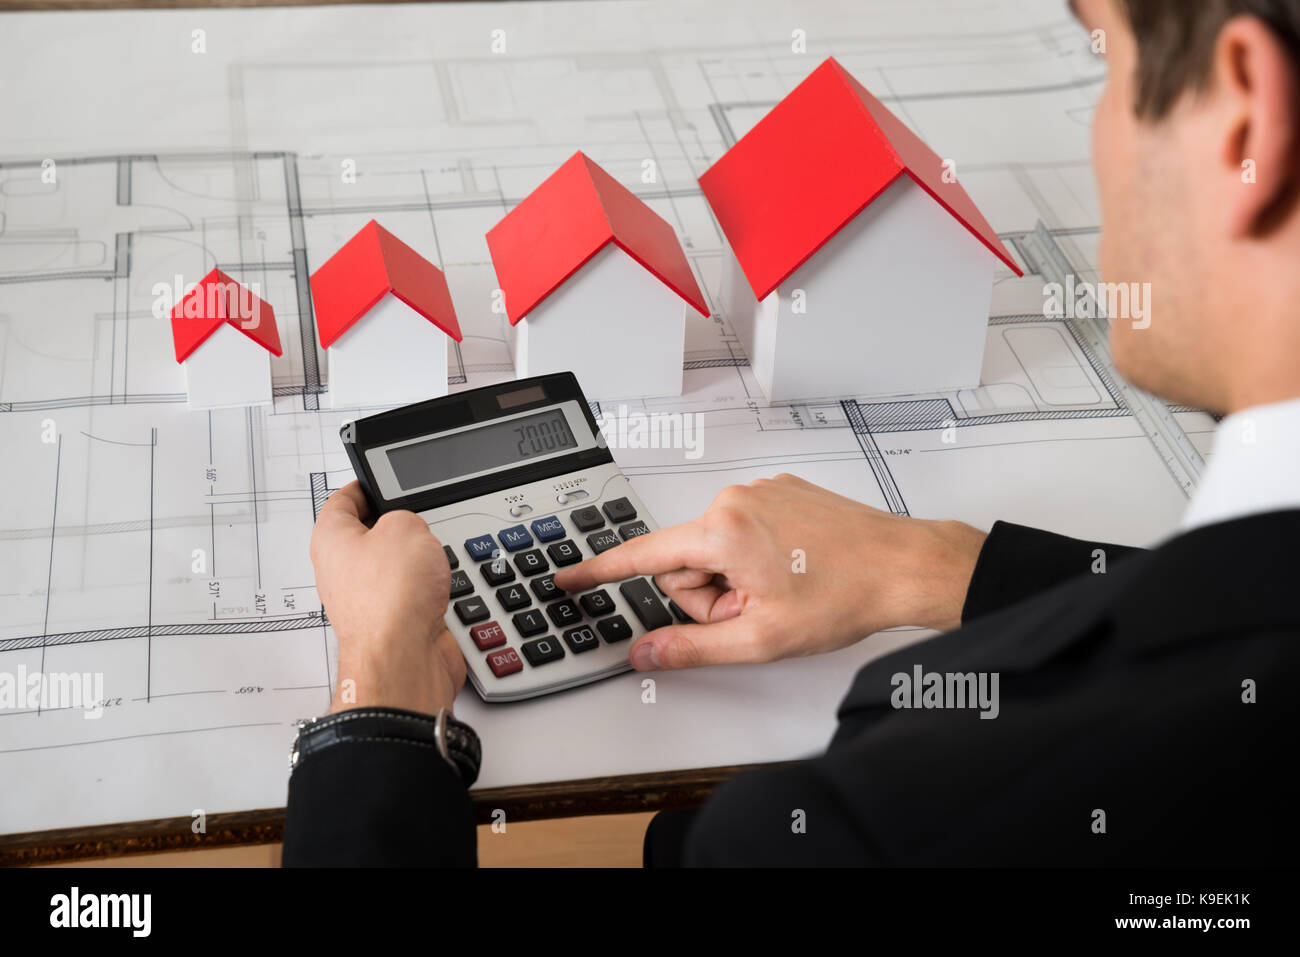 Close-up Of Male Architect Calculating In Front Of House Models On Blue Print In Office - Stock Image